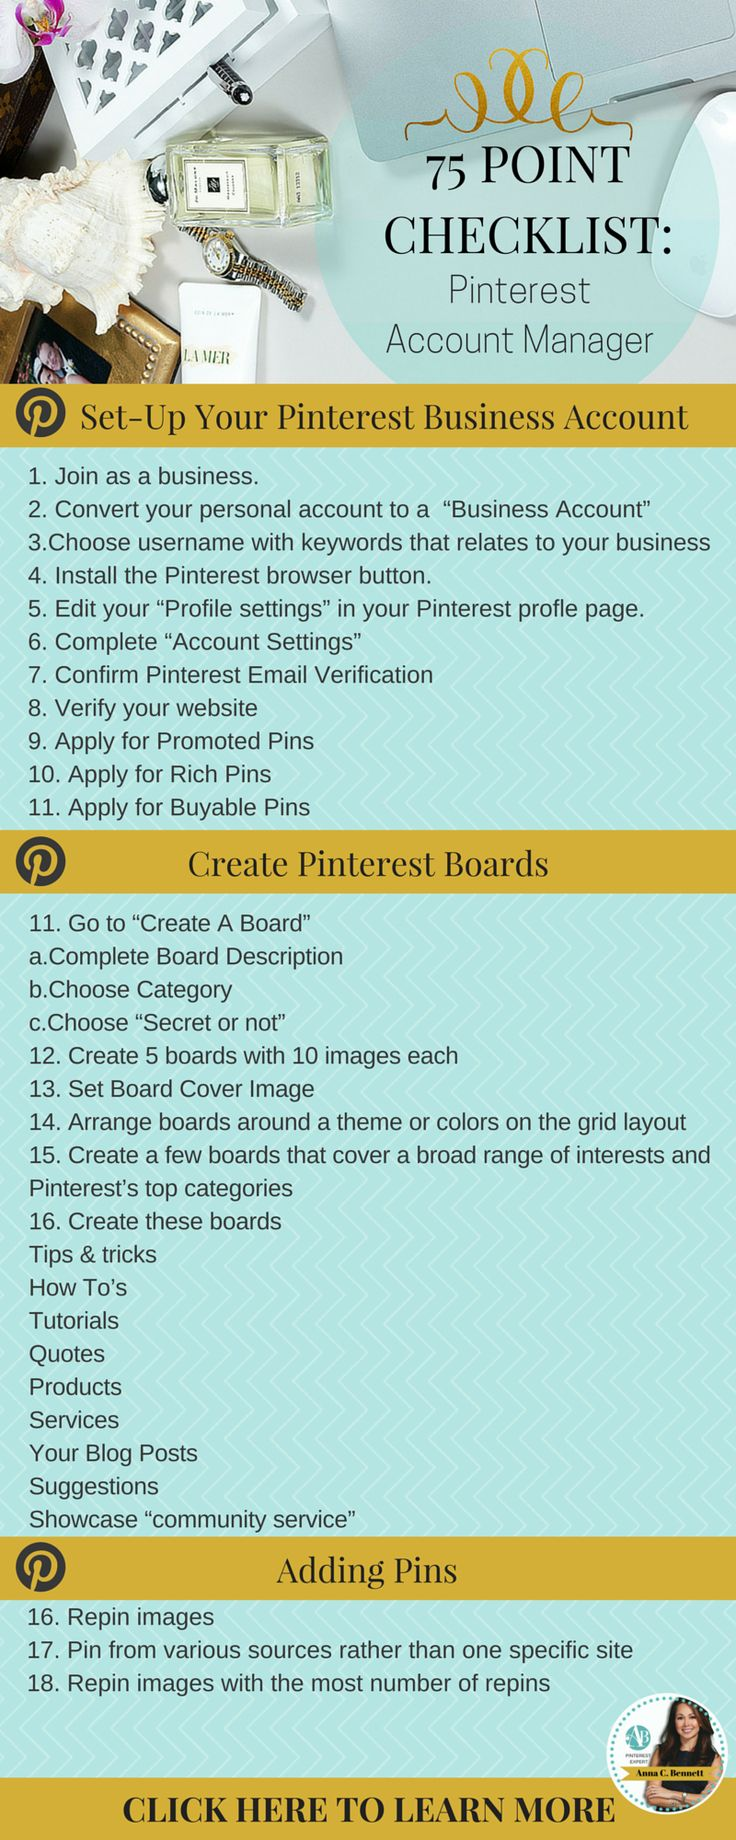 Regardless of whether you manage your Pinterest account in-house or outsource the management to an expert you have to decide ahead of time what you're willing to invest and what you expect in return. Learn how to choose the right Pinterest account manager for your business http://www.whiteglovesocialmedia.com/social-media-marketing-for-your-business-75-point-checklist/